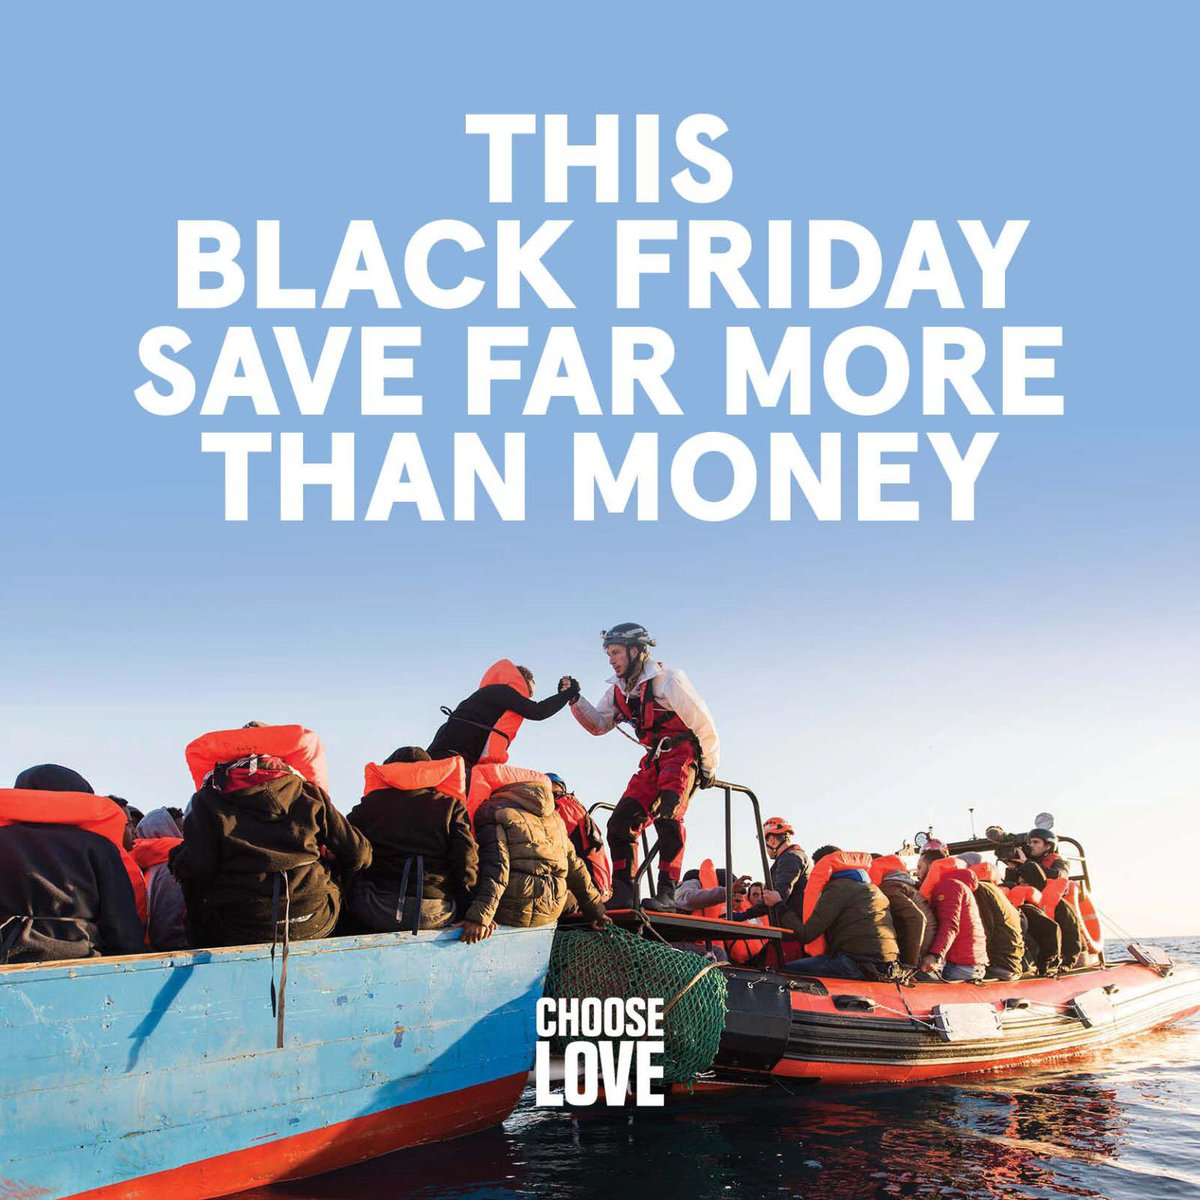 This Black Friday, make your present shopping really count ❤️⁣ The ⁣#ChooseLove store sells real items refugees who are facing winter in the most difficult conditions you can imagine. https://t.co/uRxbBEStKx